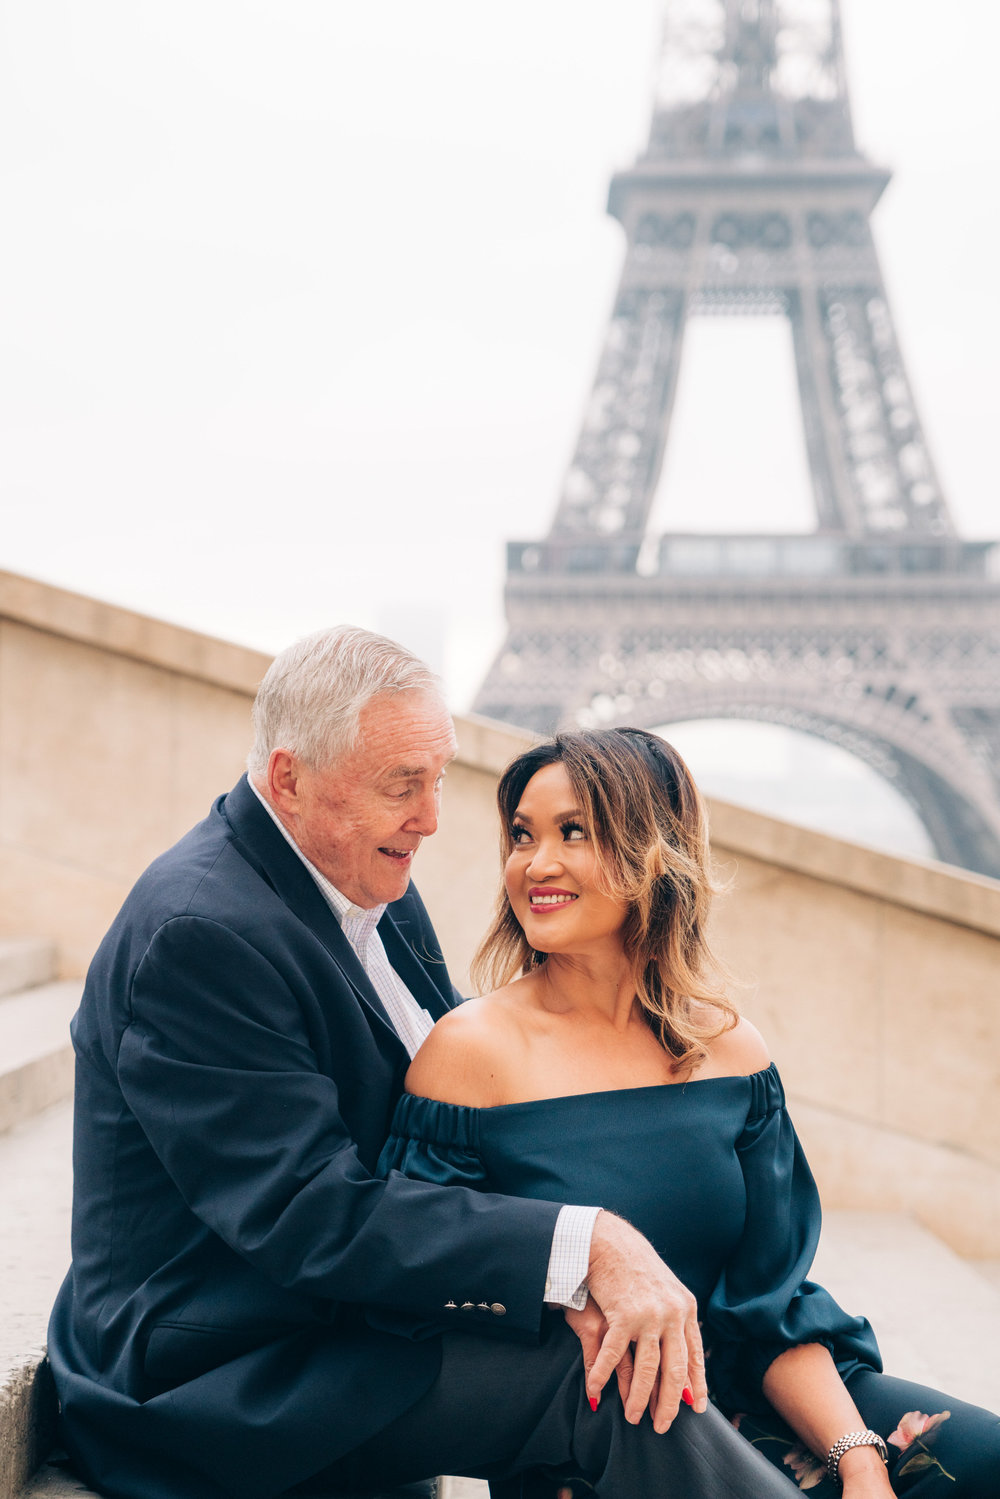 wedding anniversary photo shoot at the eiffel tower in paris